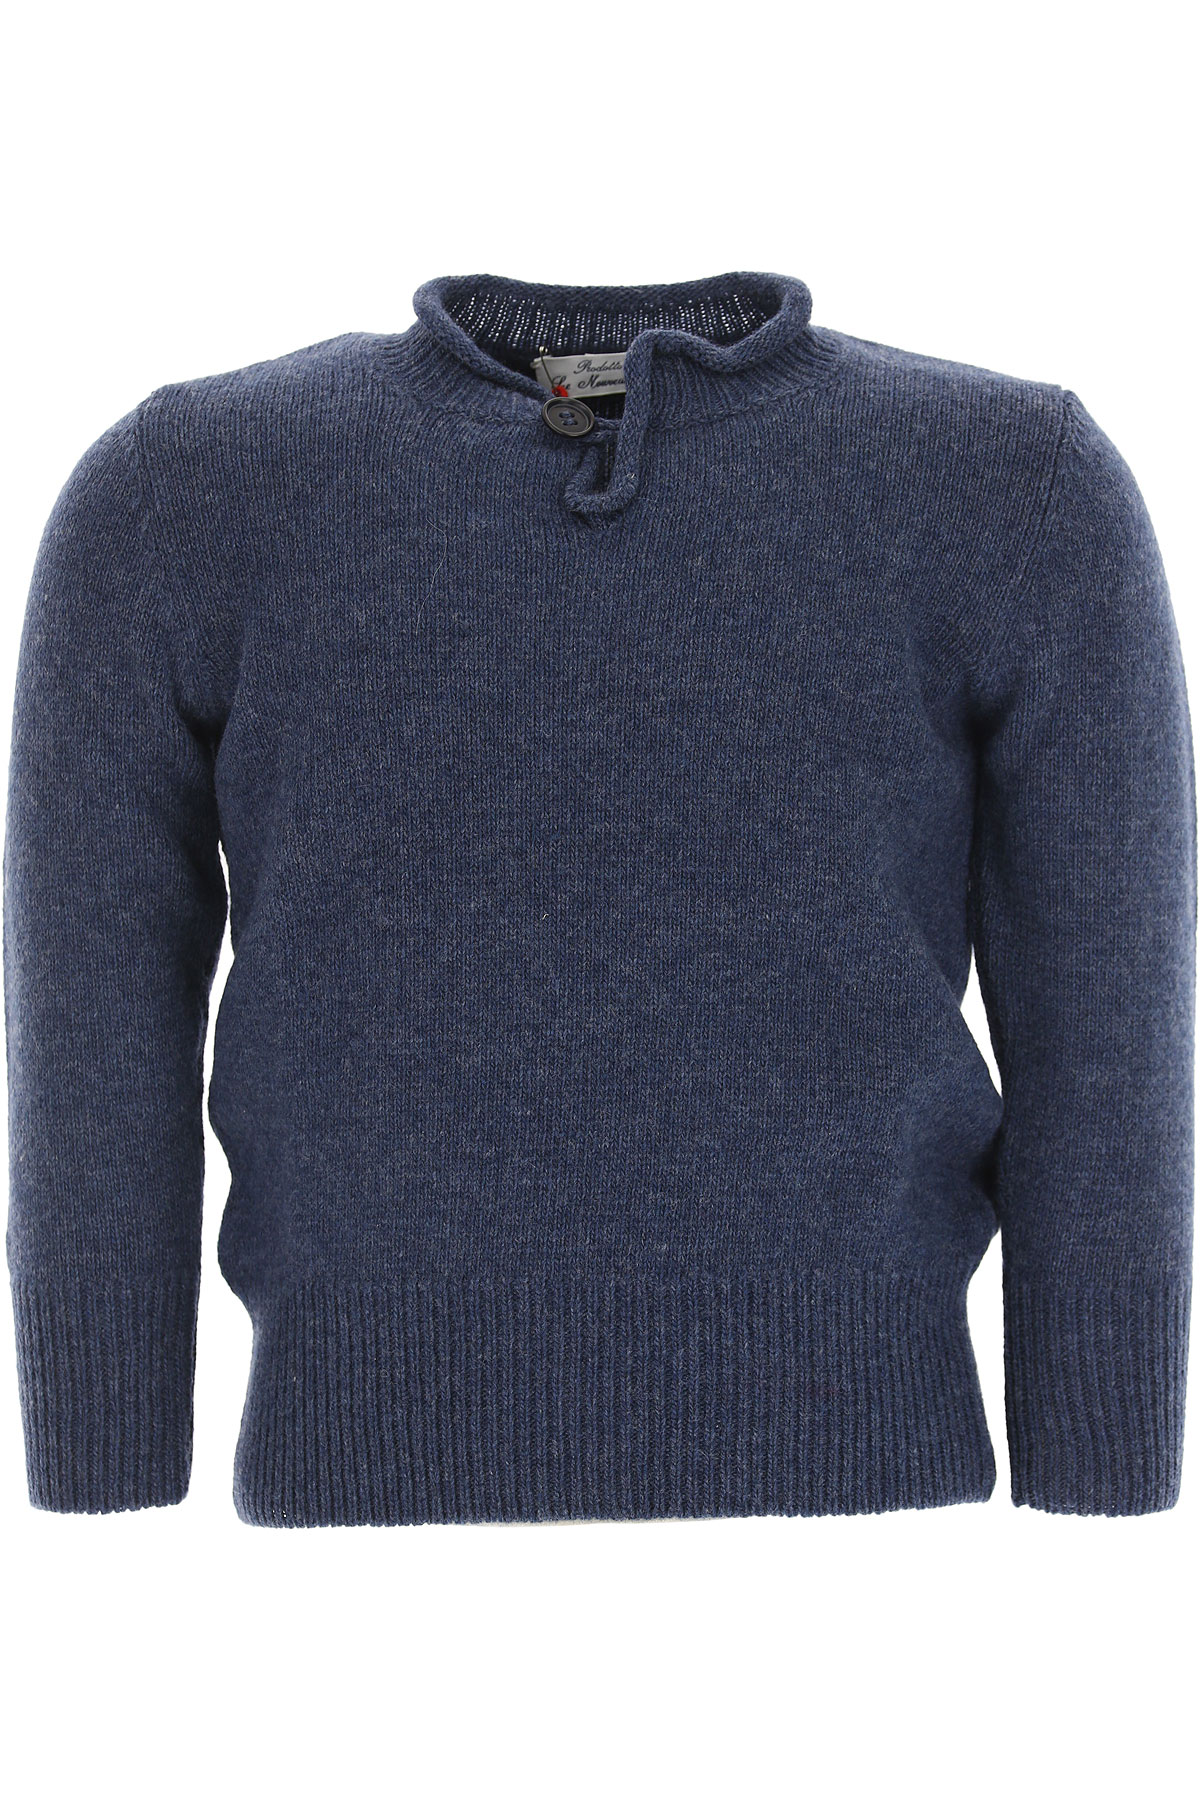 Le Nouveau - Né Kids Sweaters for Boys On Sale in Outlet, Blue, Wool, 2019, 5Y 6Y